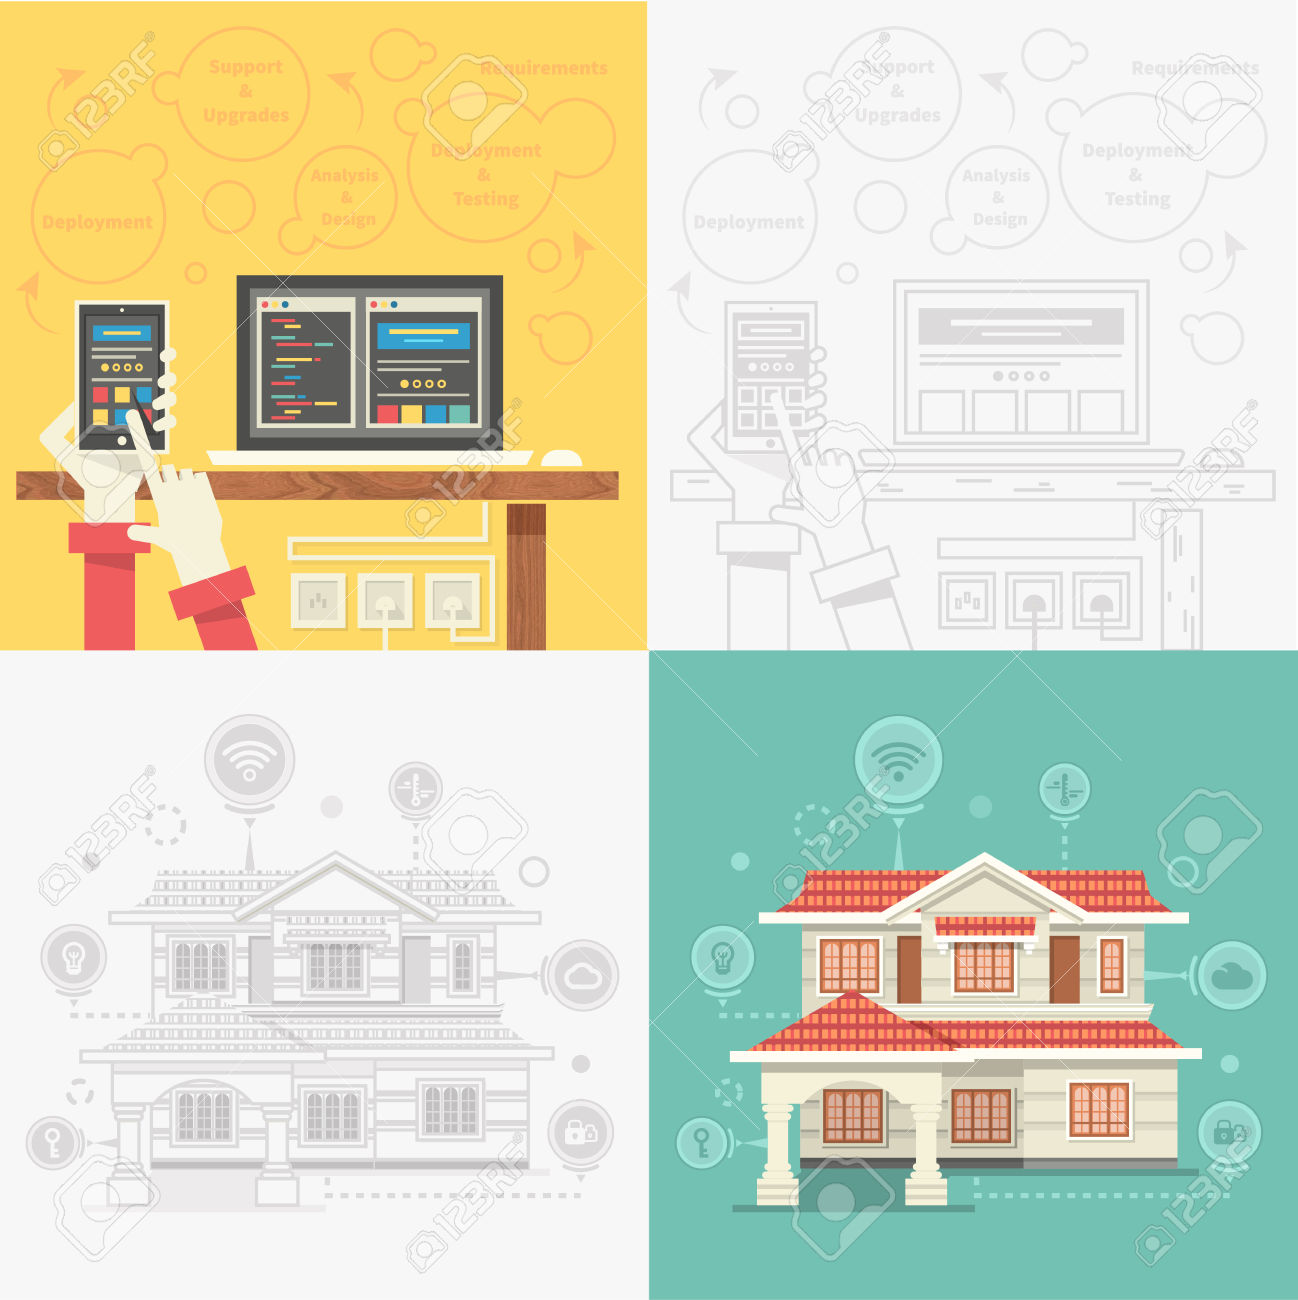 People talking clip art in addition 3d home design house additionally - In Addition It Will Contain The Components That Will Be Controlled Which Are A Fan Lamps And Motor Moreover The Room Prototype Has A Weight Of 2 5 Kg